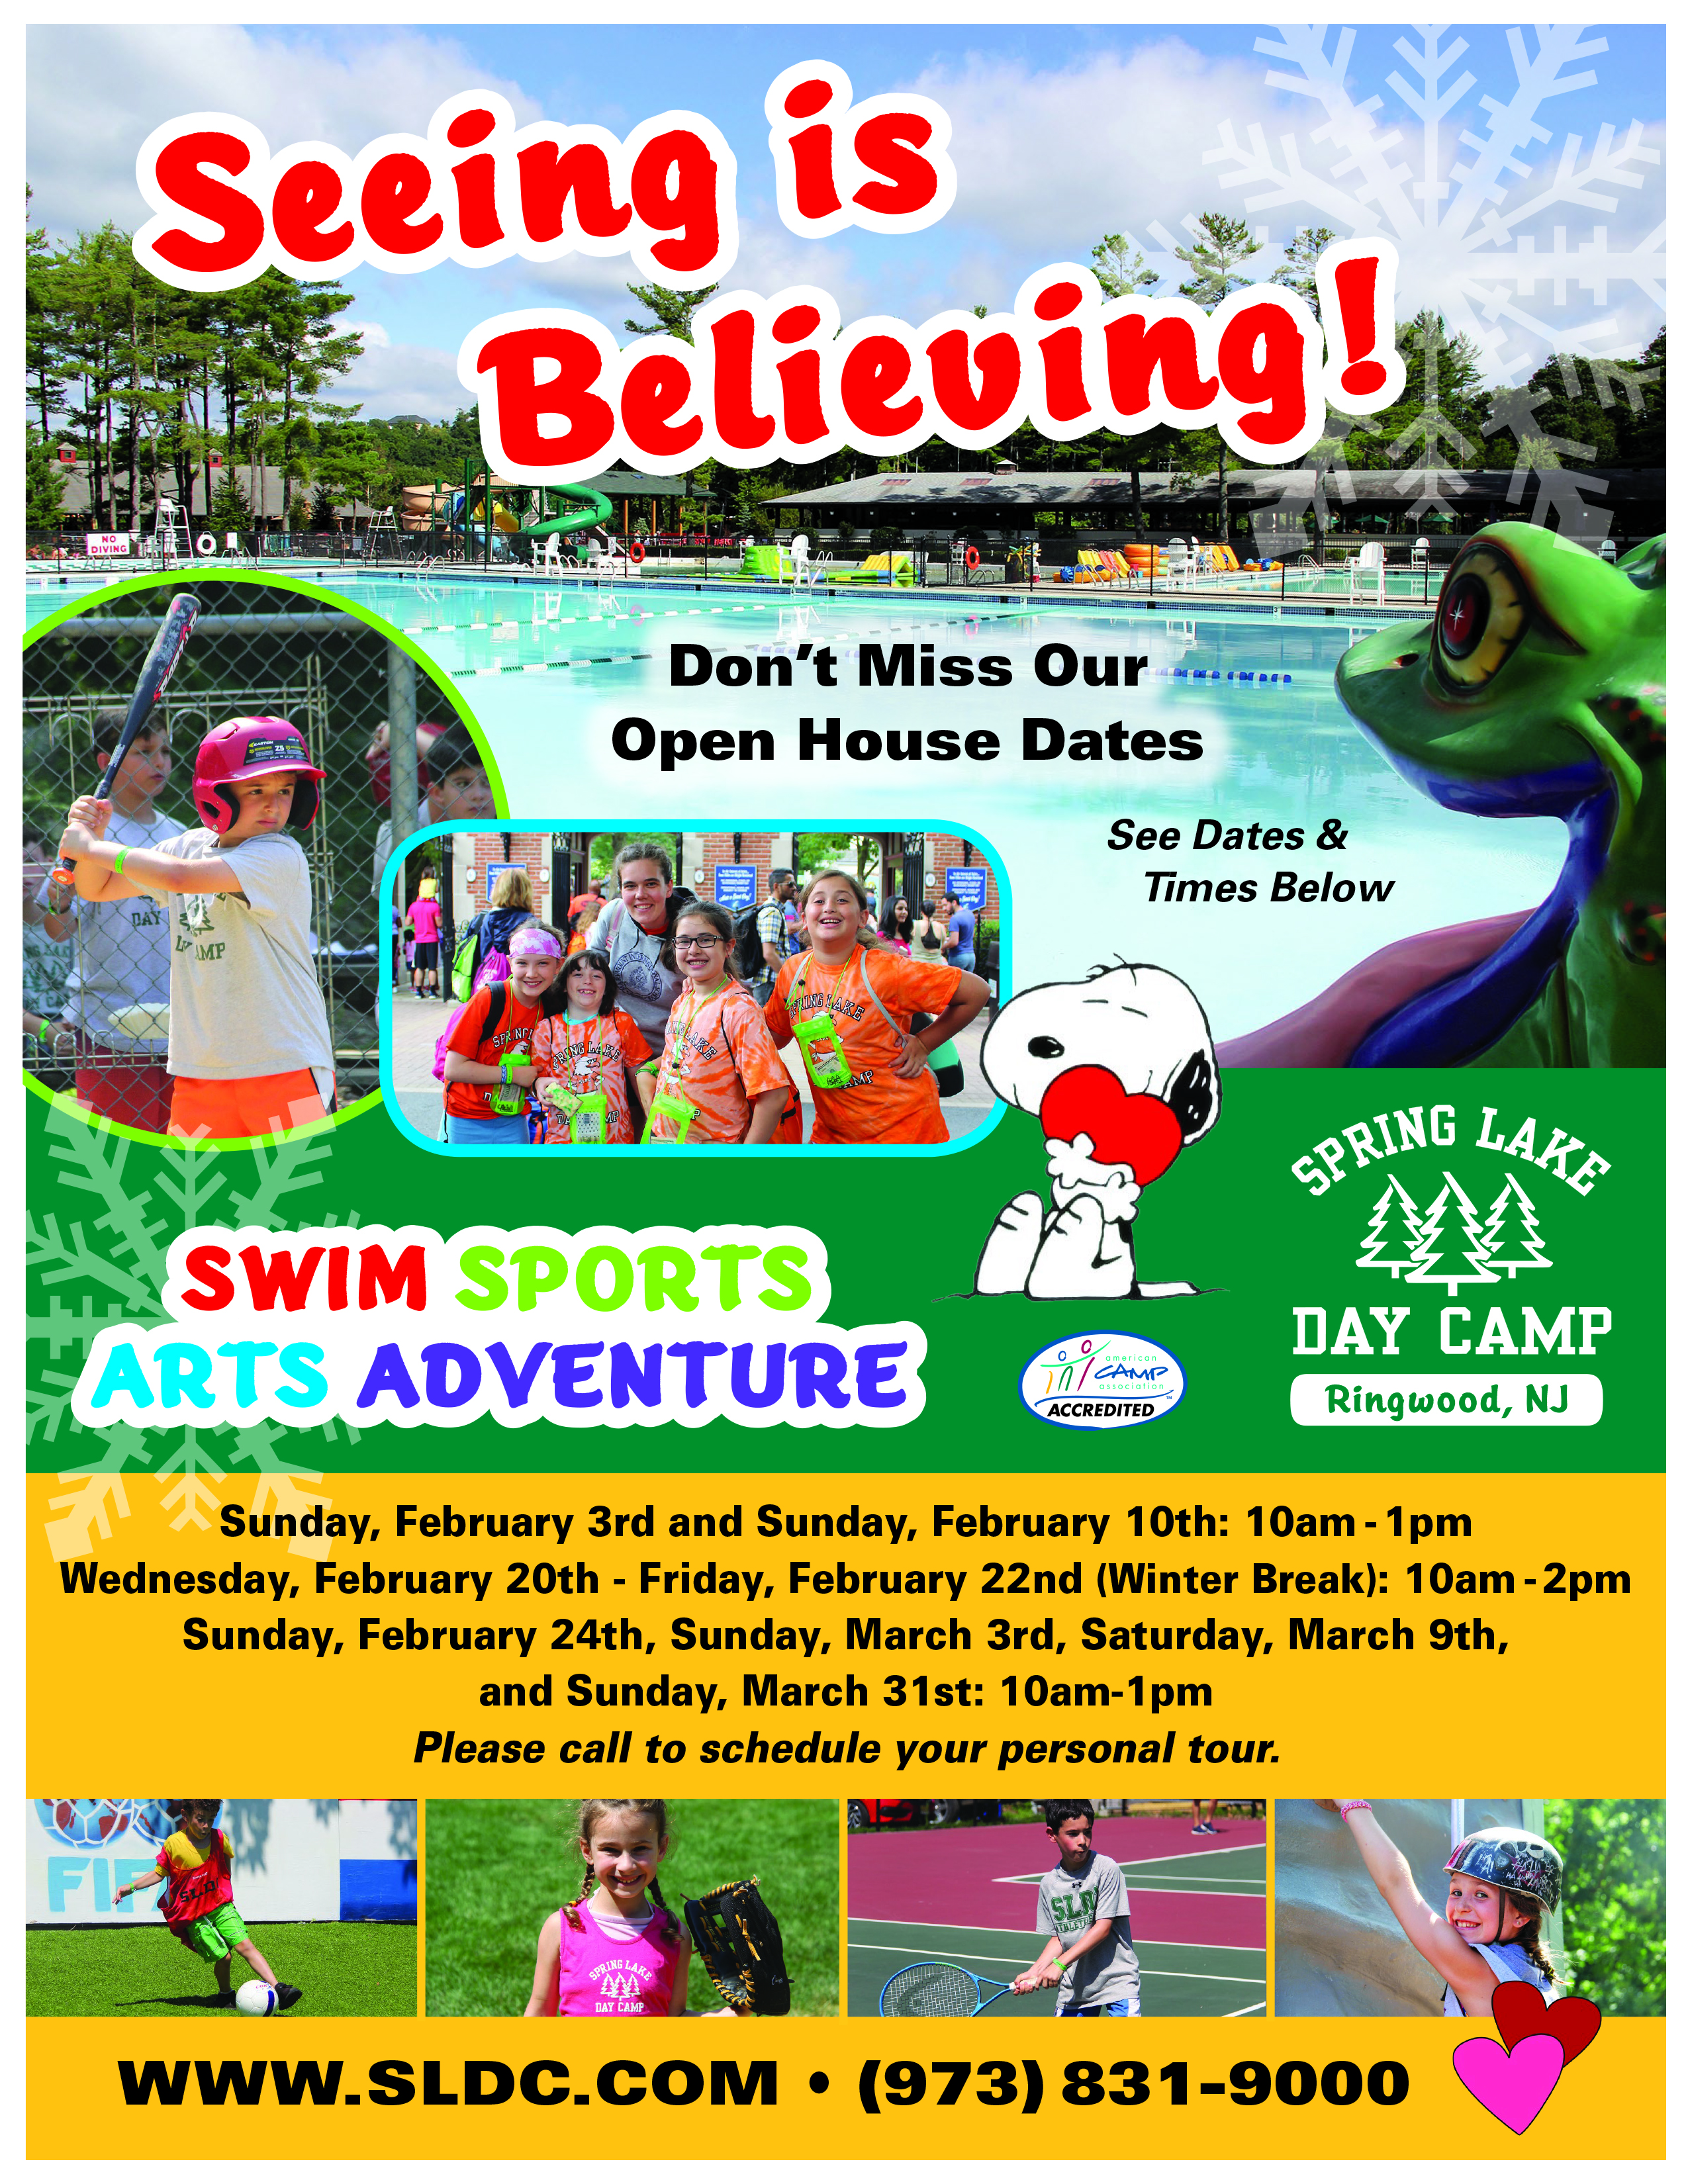 Ringwood Spring Lake Day Camp Open House